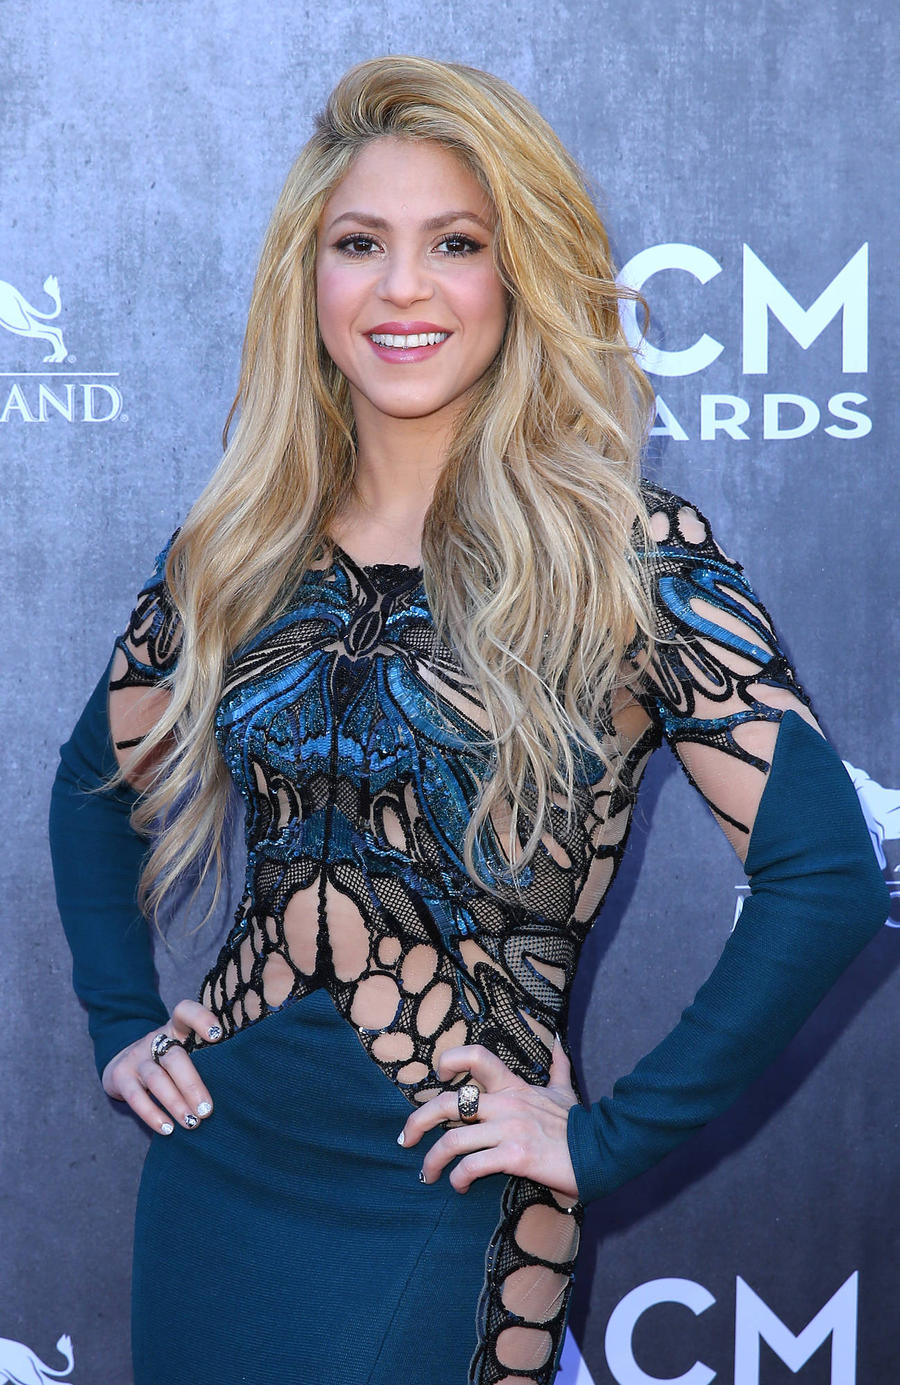 Shakira And Ava Duvernay Among World's Greatest Leaders